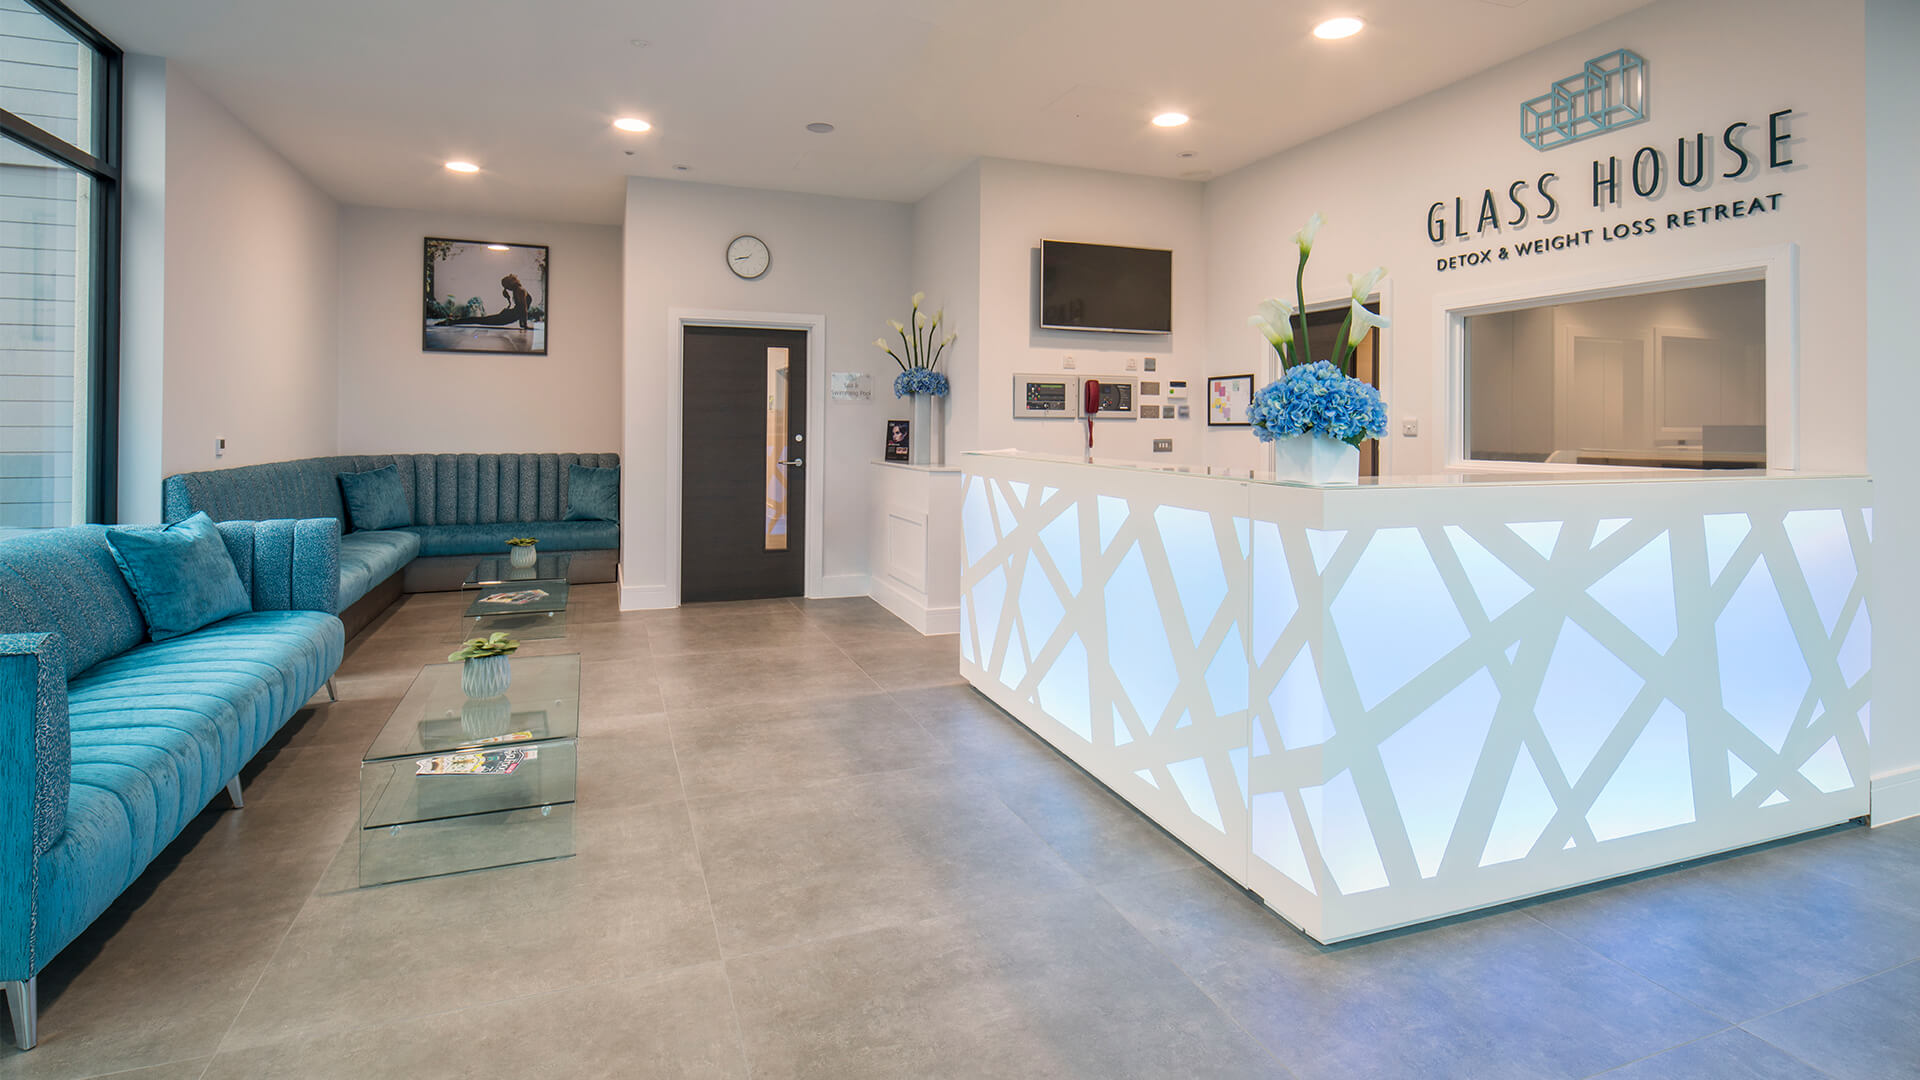 Glass House Retreat is the UK's first purpose-built spa, detox and weight loss retreat set in the heart of the Essex countryside.